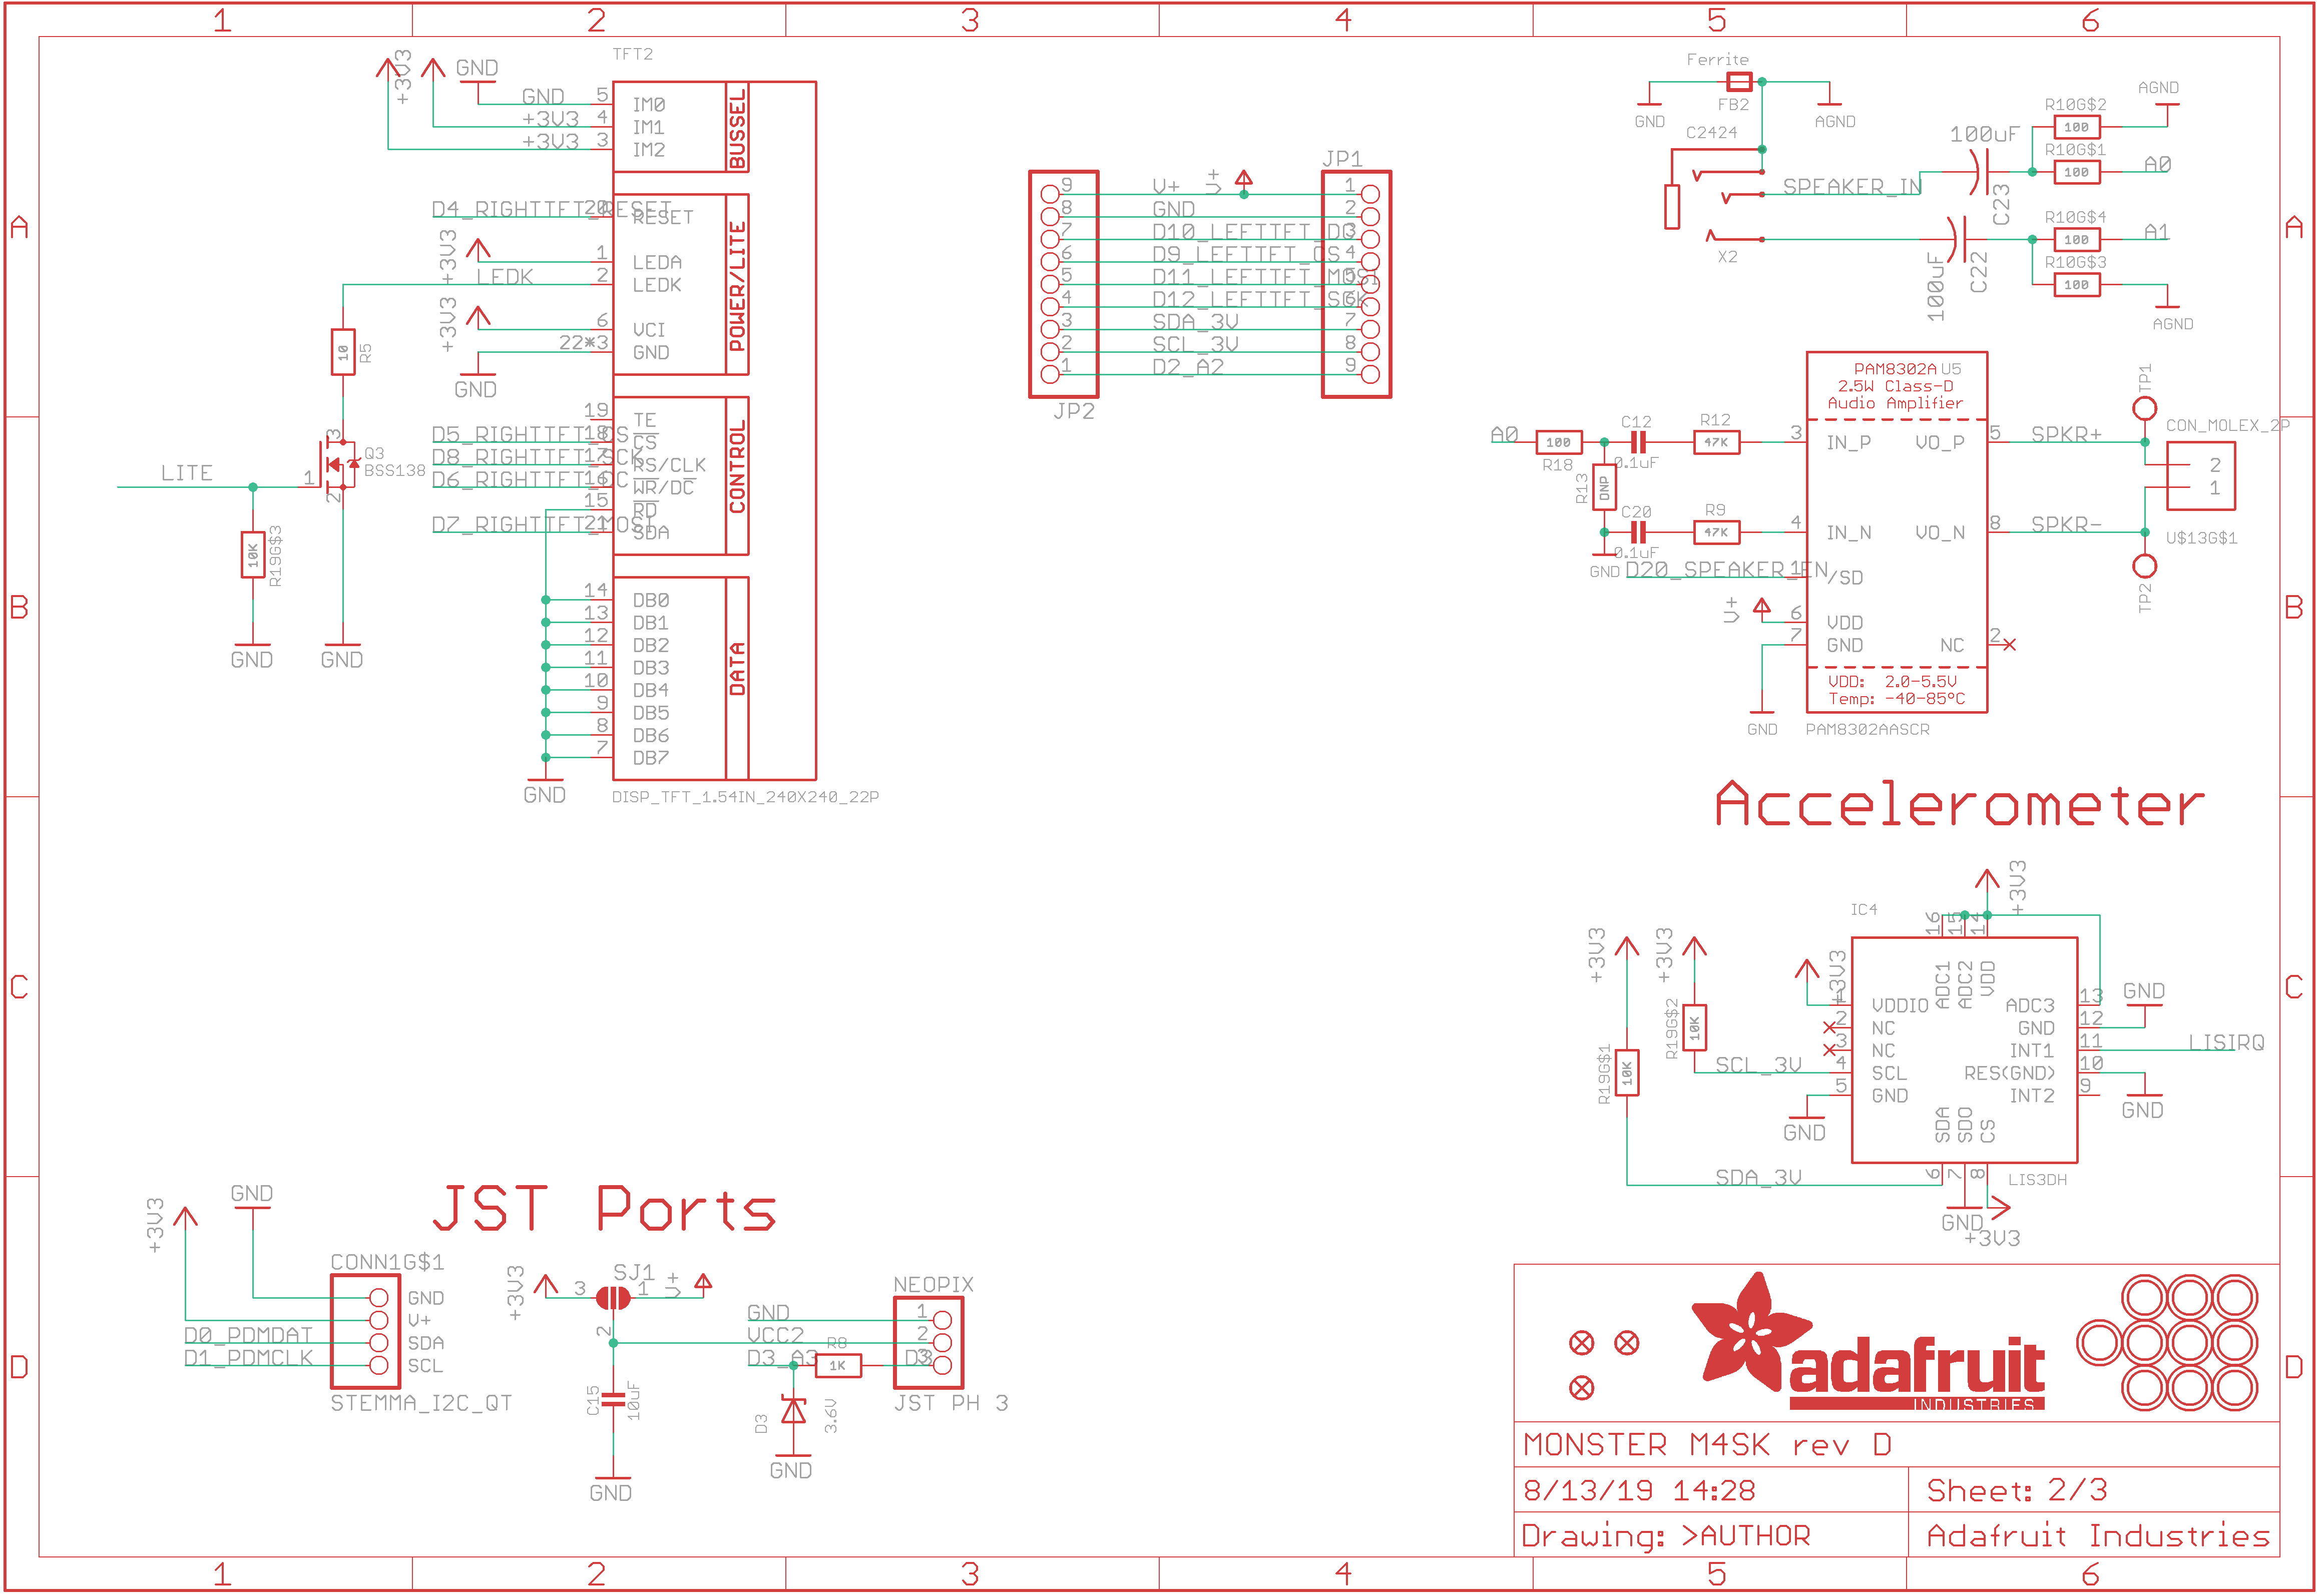 adafruit_products_MONSTER_M4SK_Schematic_2.png